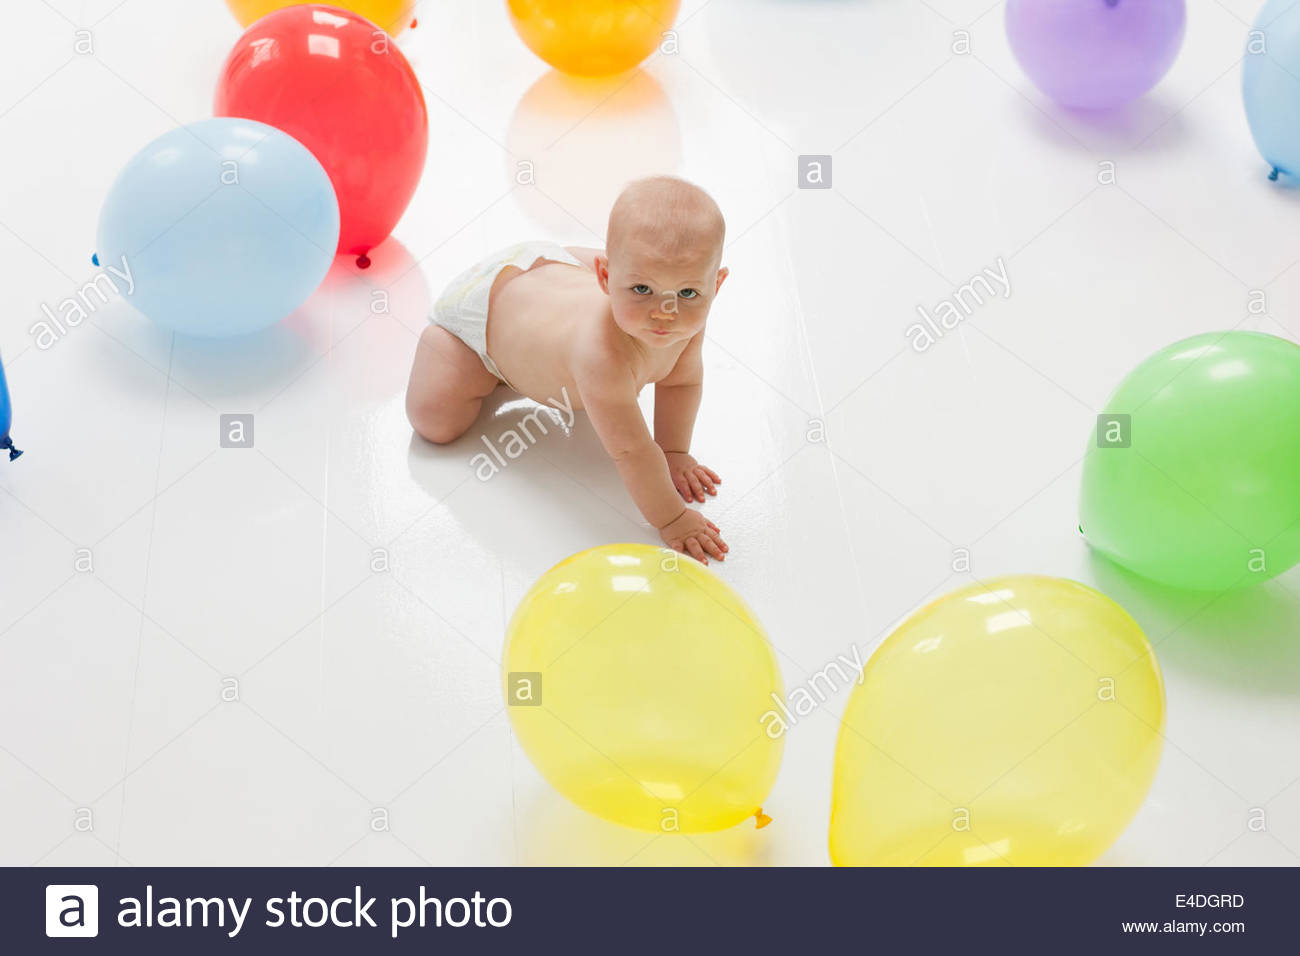 Baby reaching for balloons on floor Stock Photo